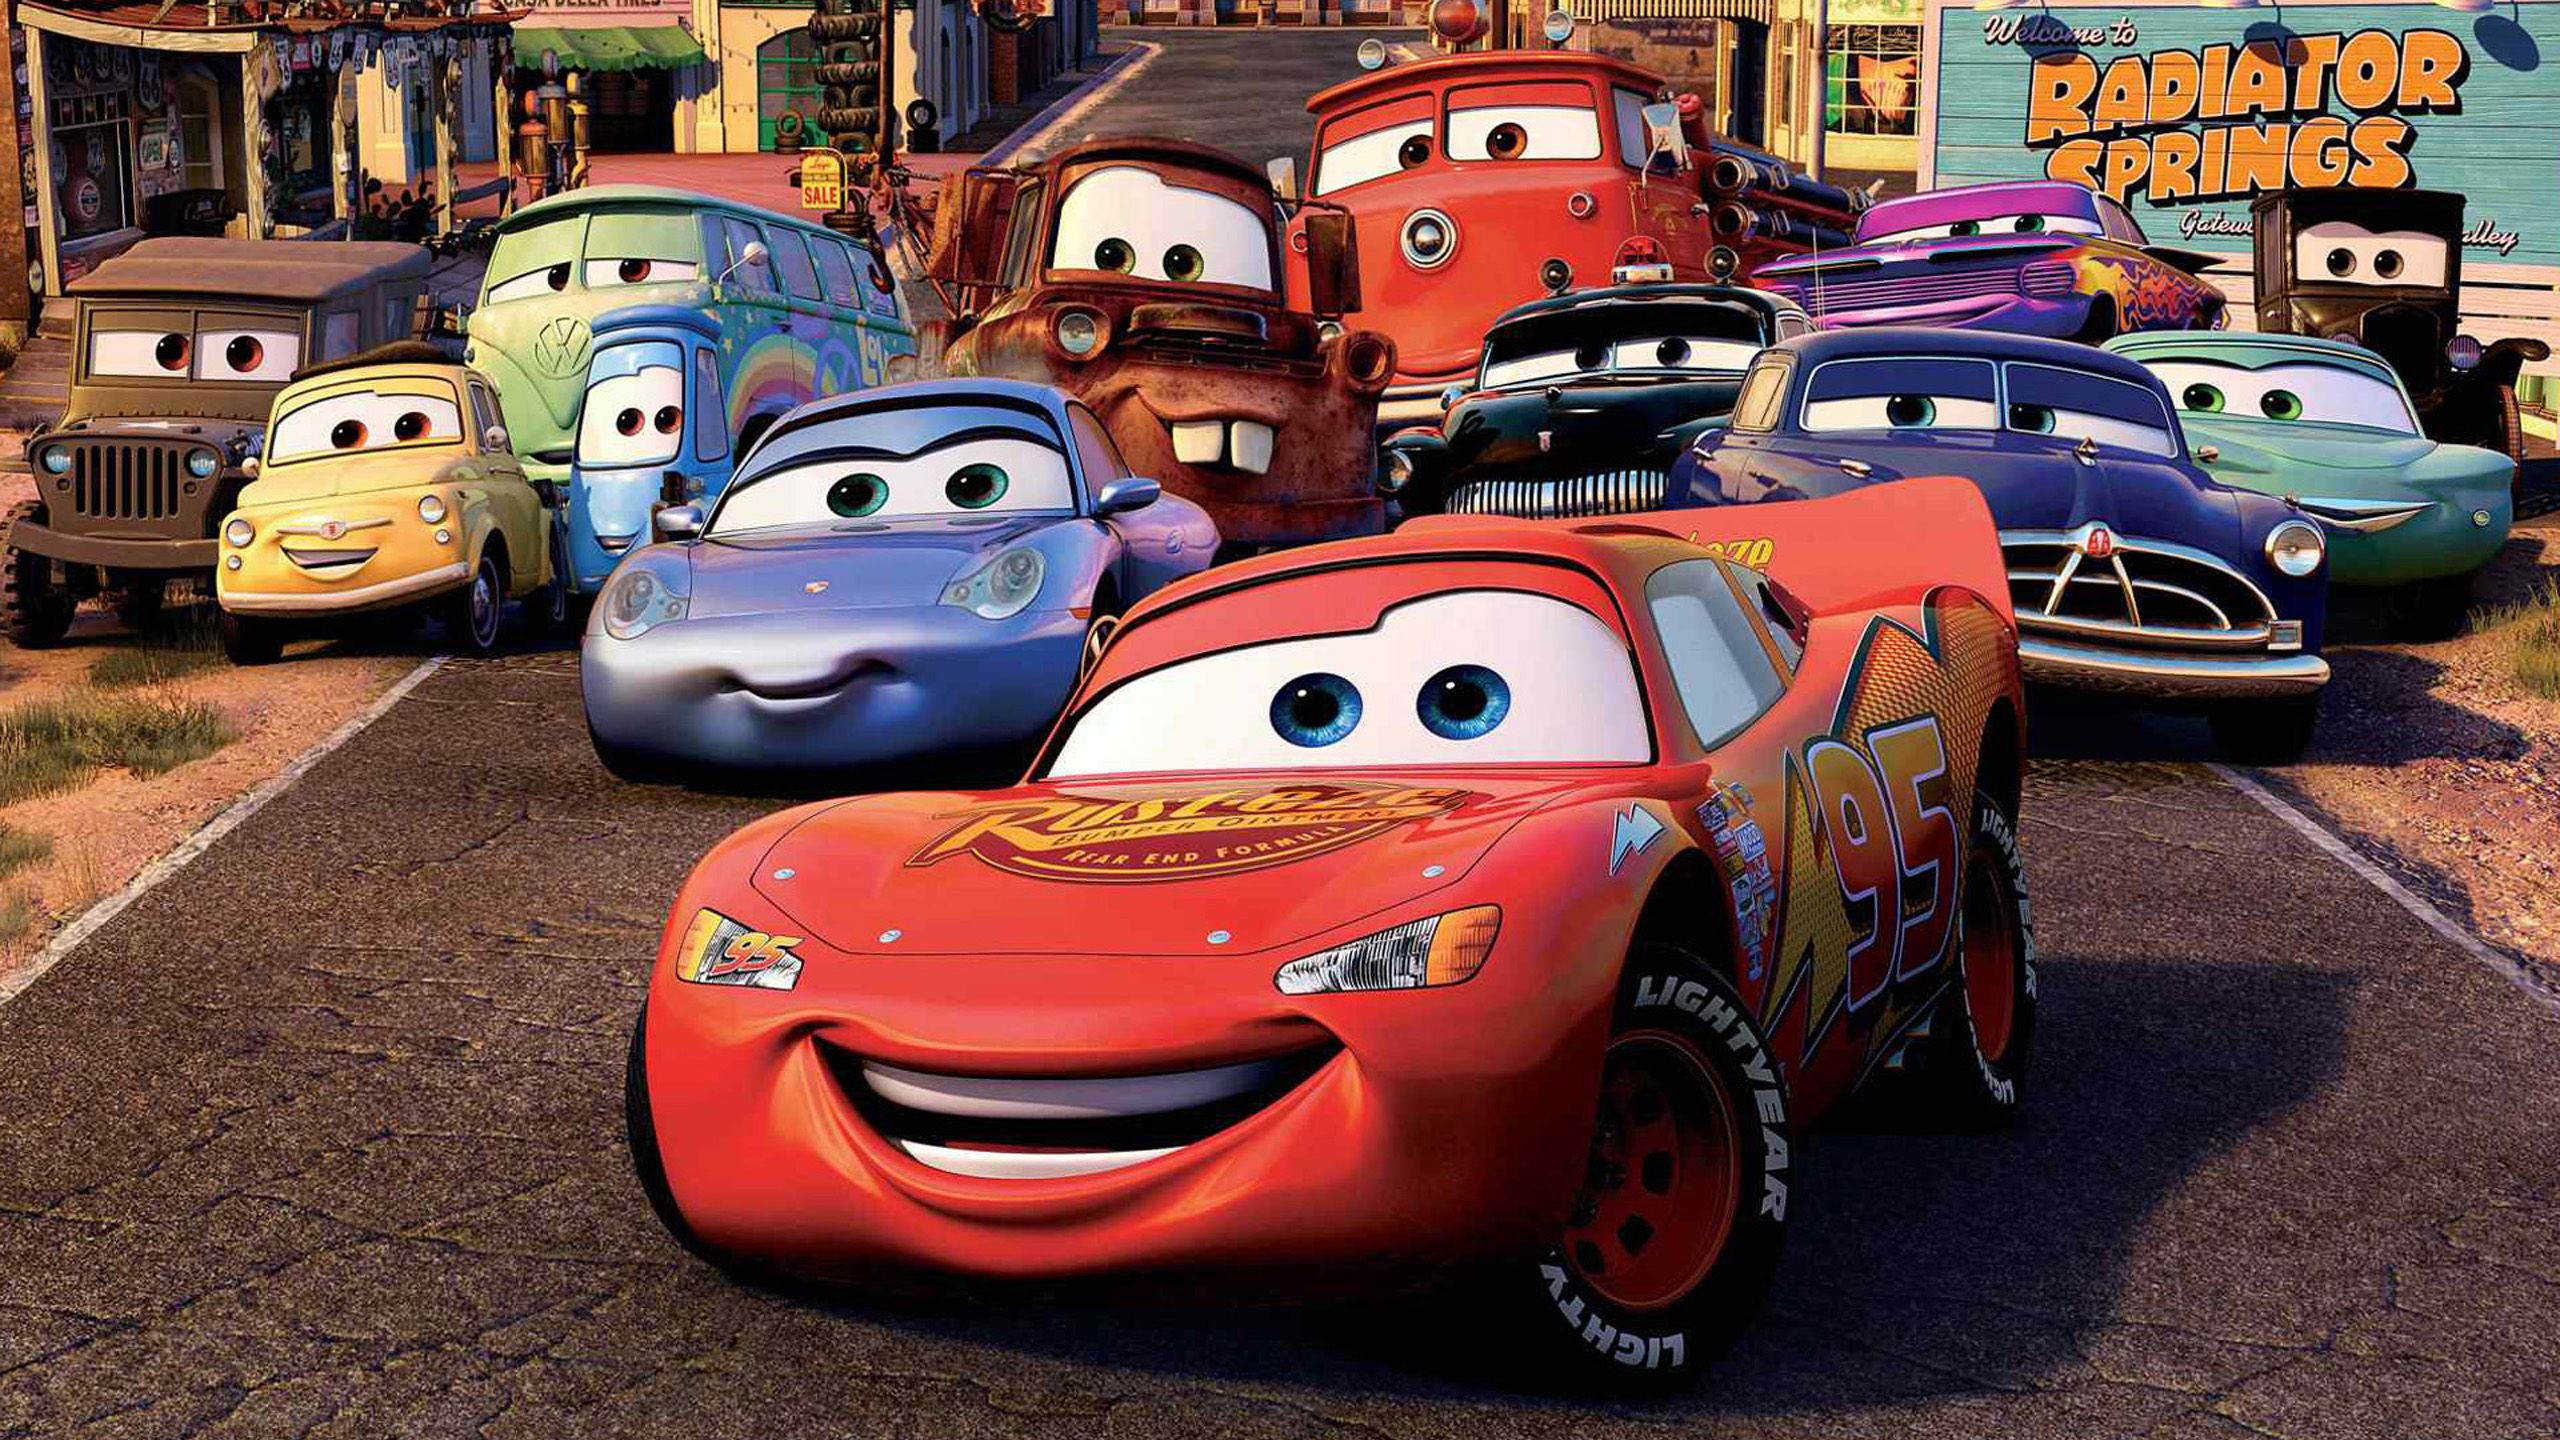 71 Best Free Cars 2 Wallpapers Wallpaperaccess